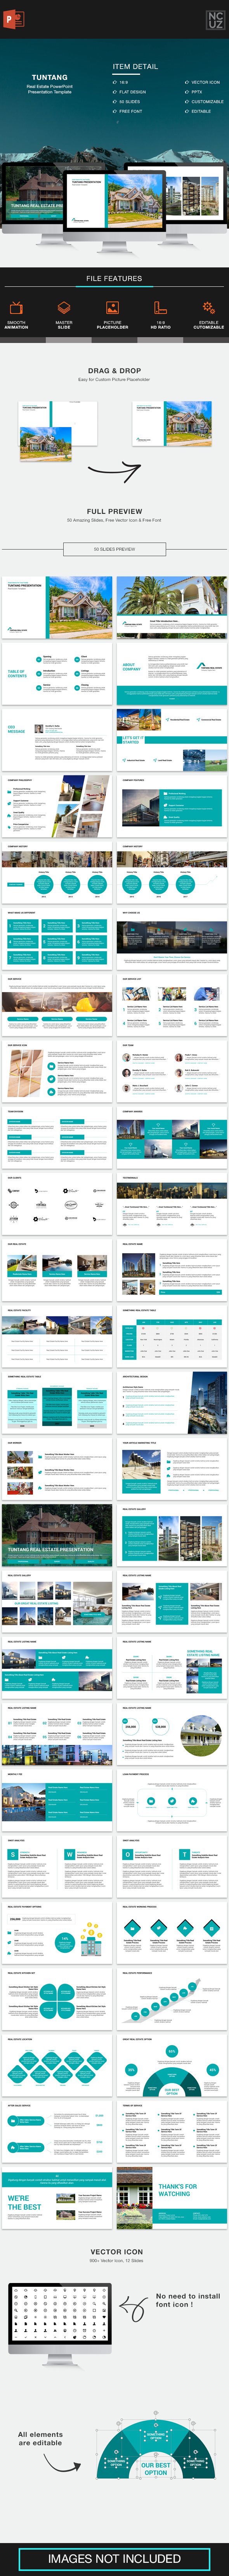 Tuntang Real Estate PowerPoint Template - Business PowerPoint Templates